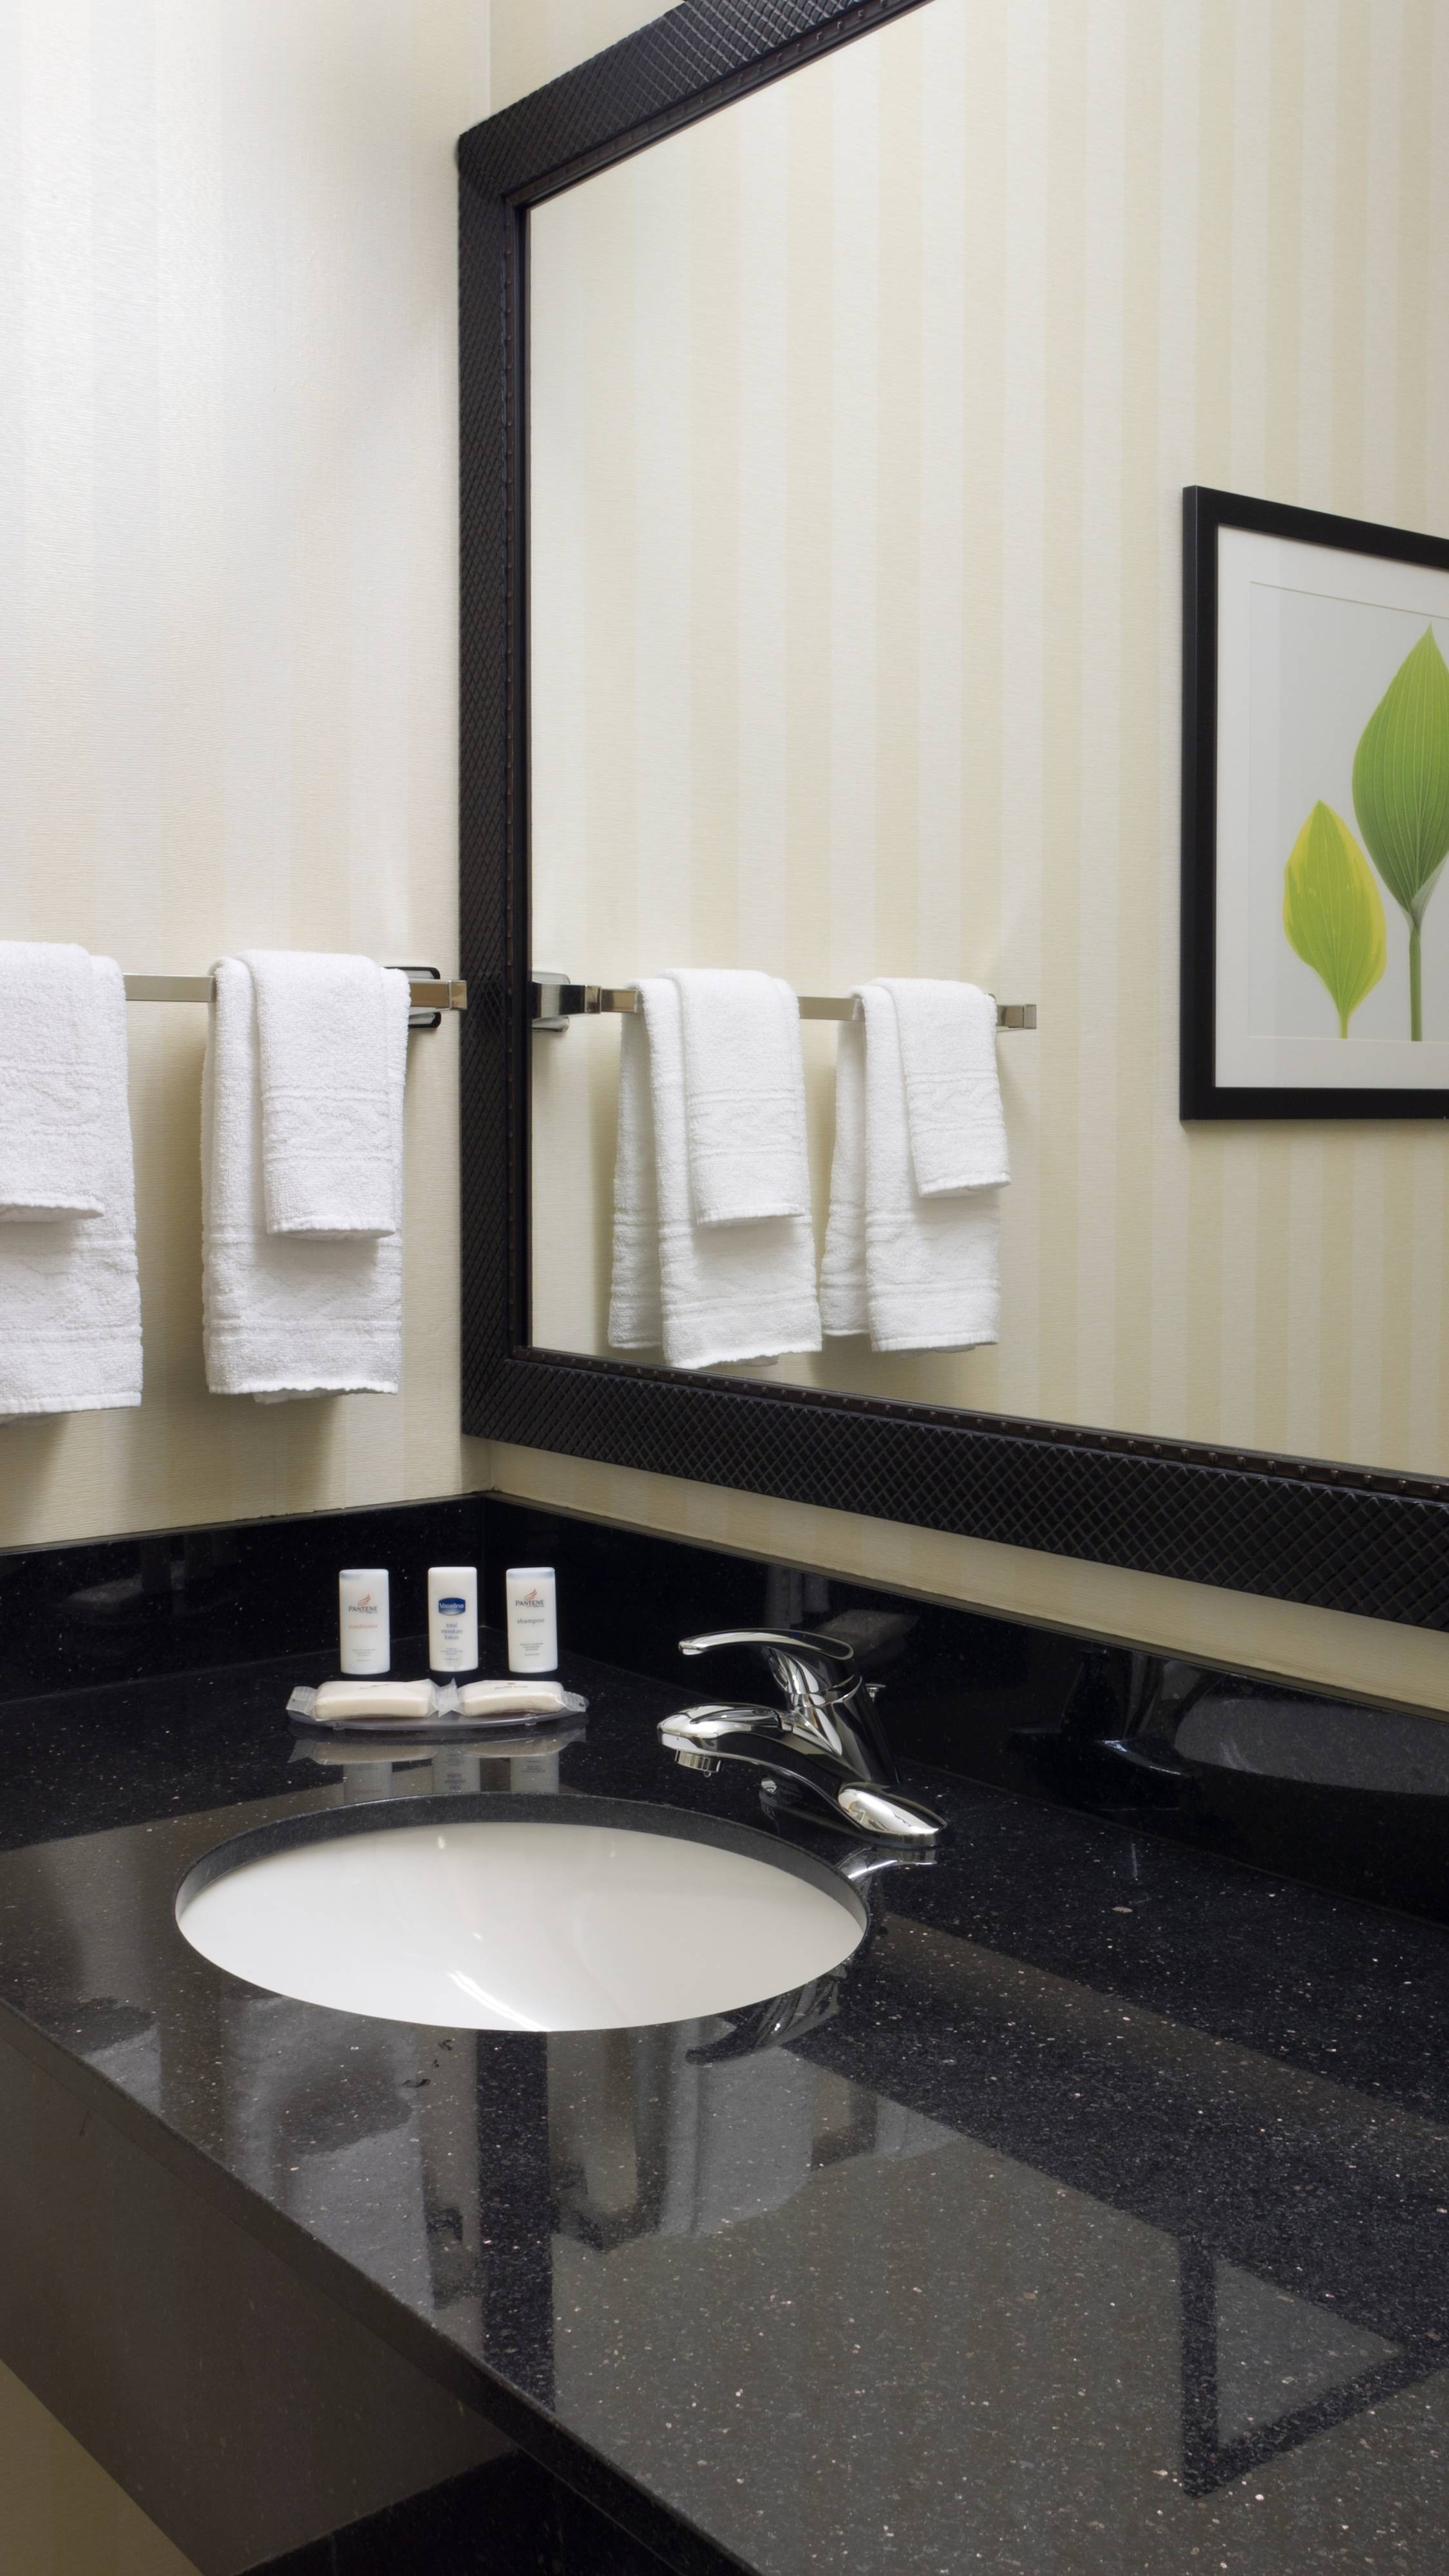 Hotelzimmer in Puyallup